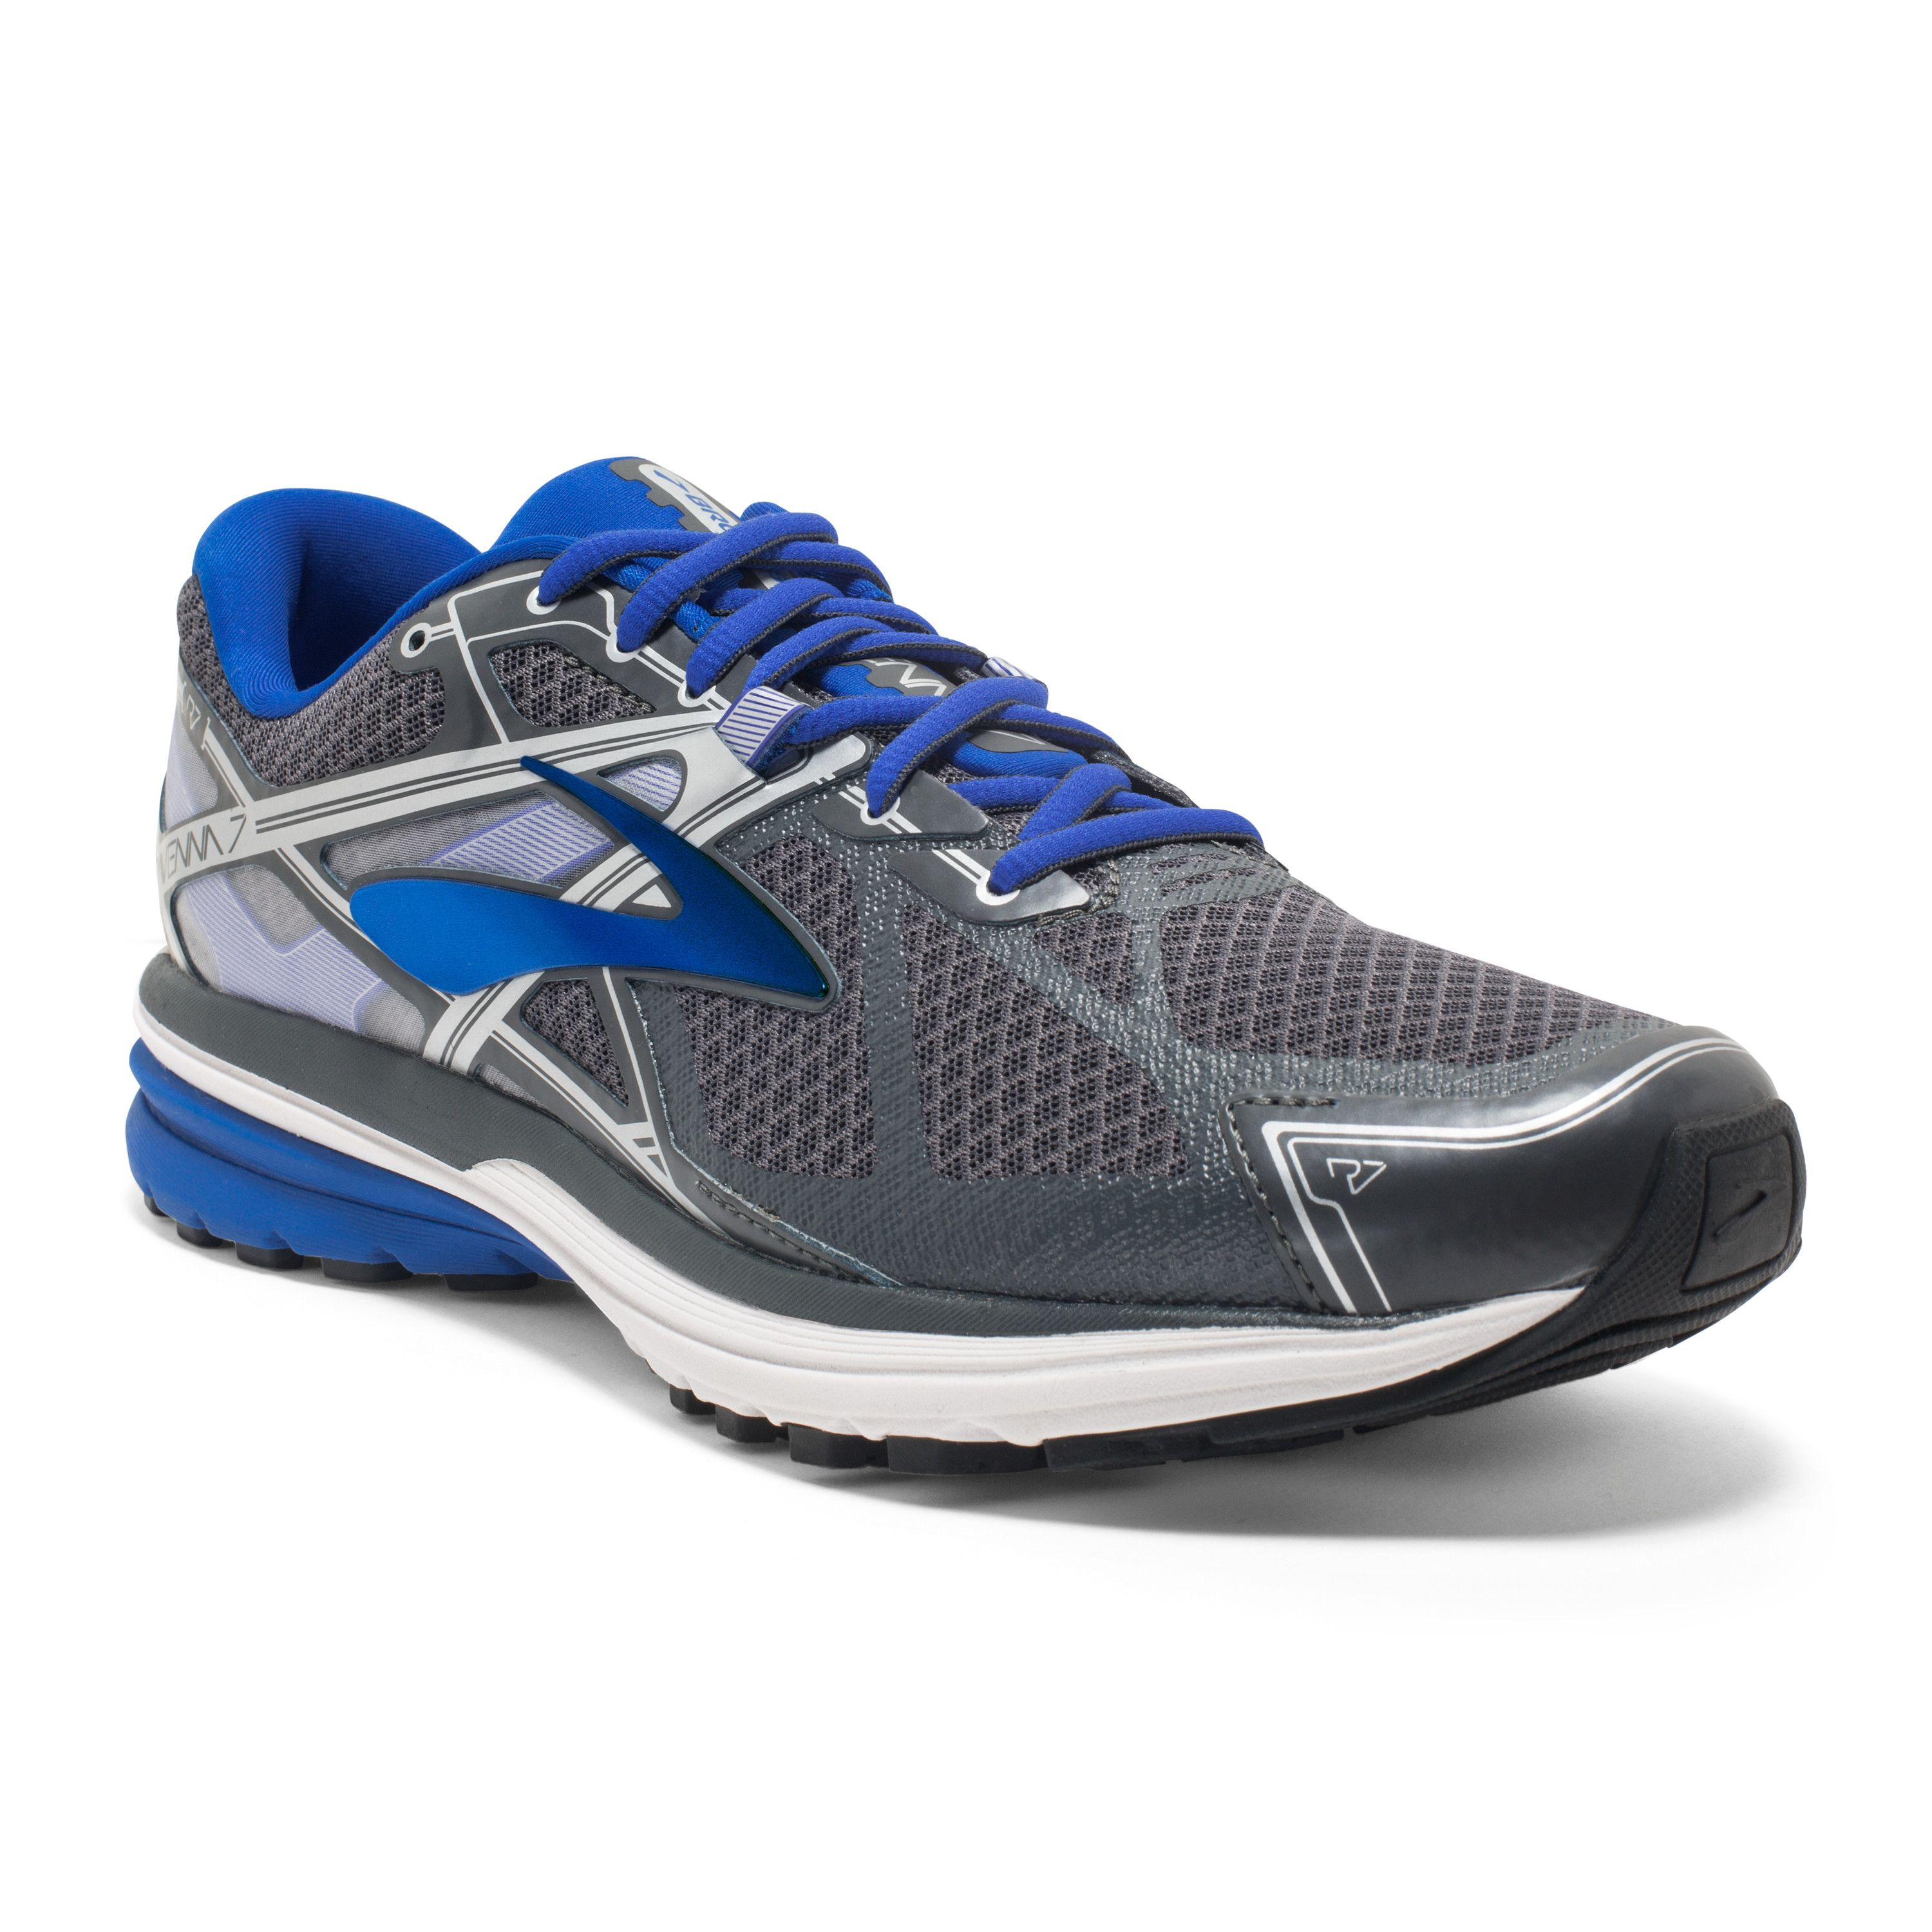 1db9cf94842 Brooks Ravenna 7! Available at The Fitted Foot!  run